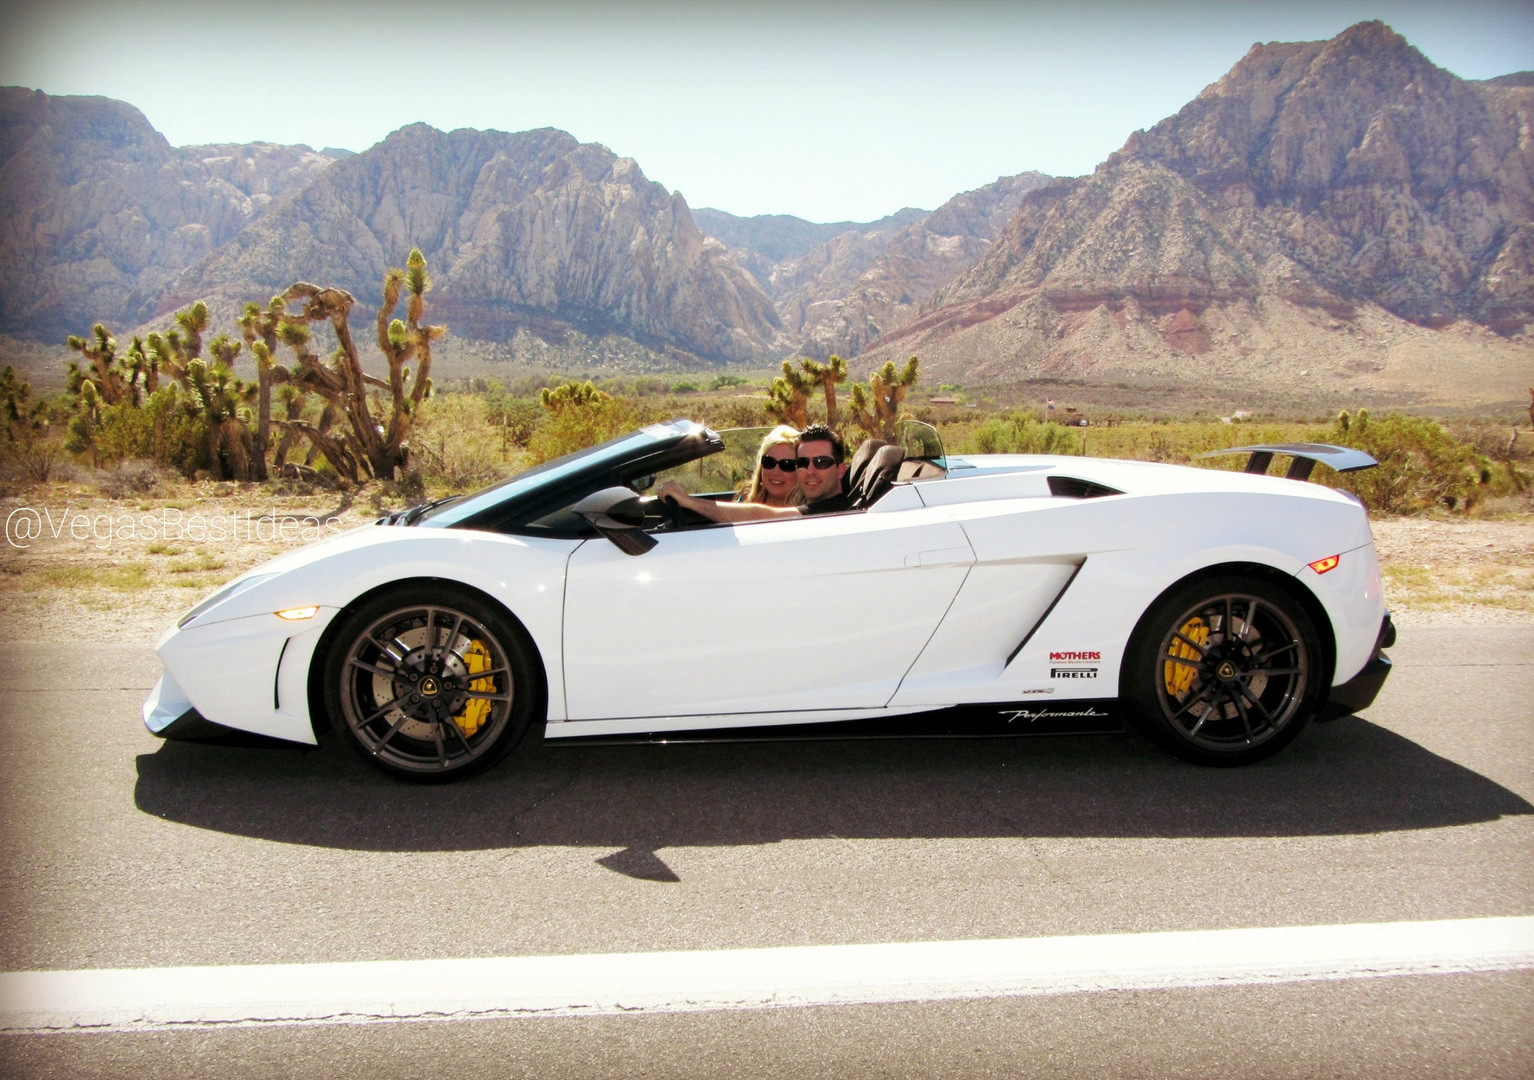 Vegas Couple Red Rock Lambo Convertible.